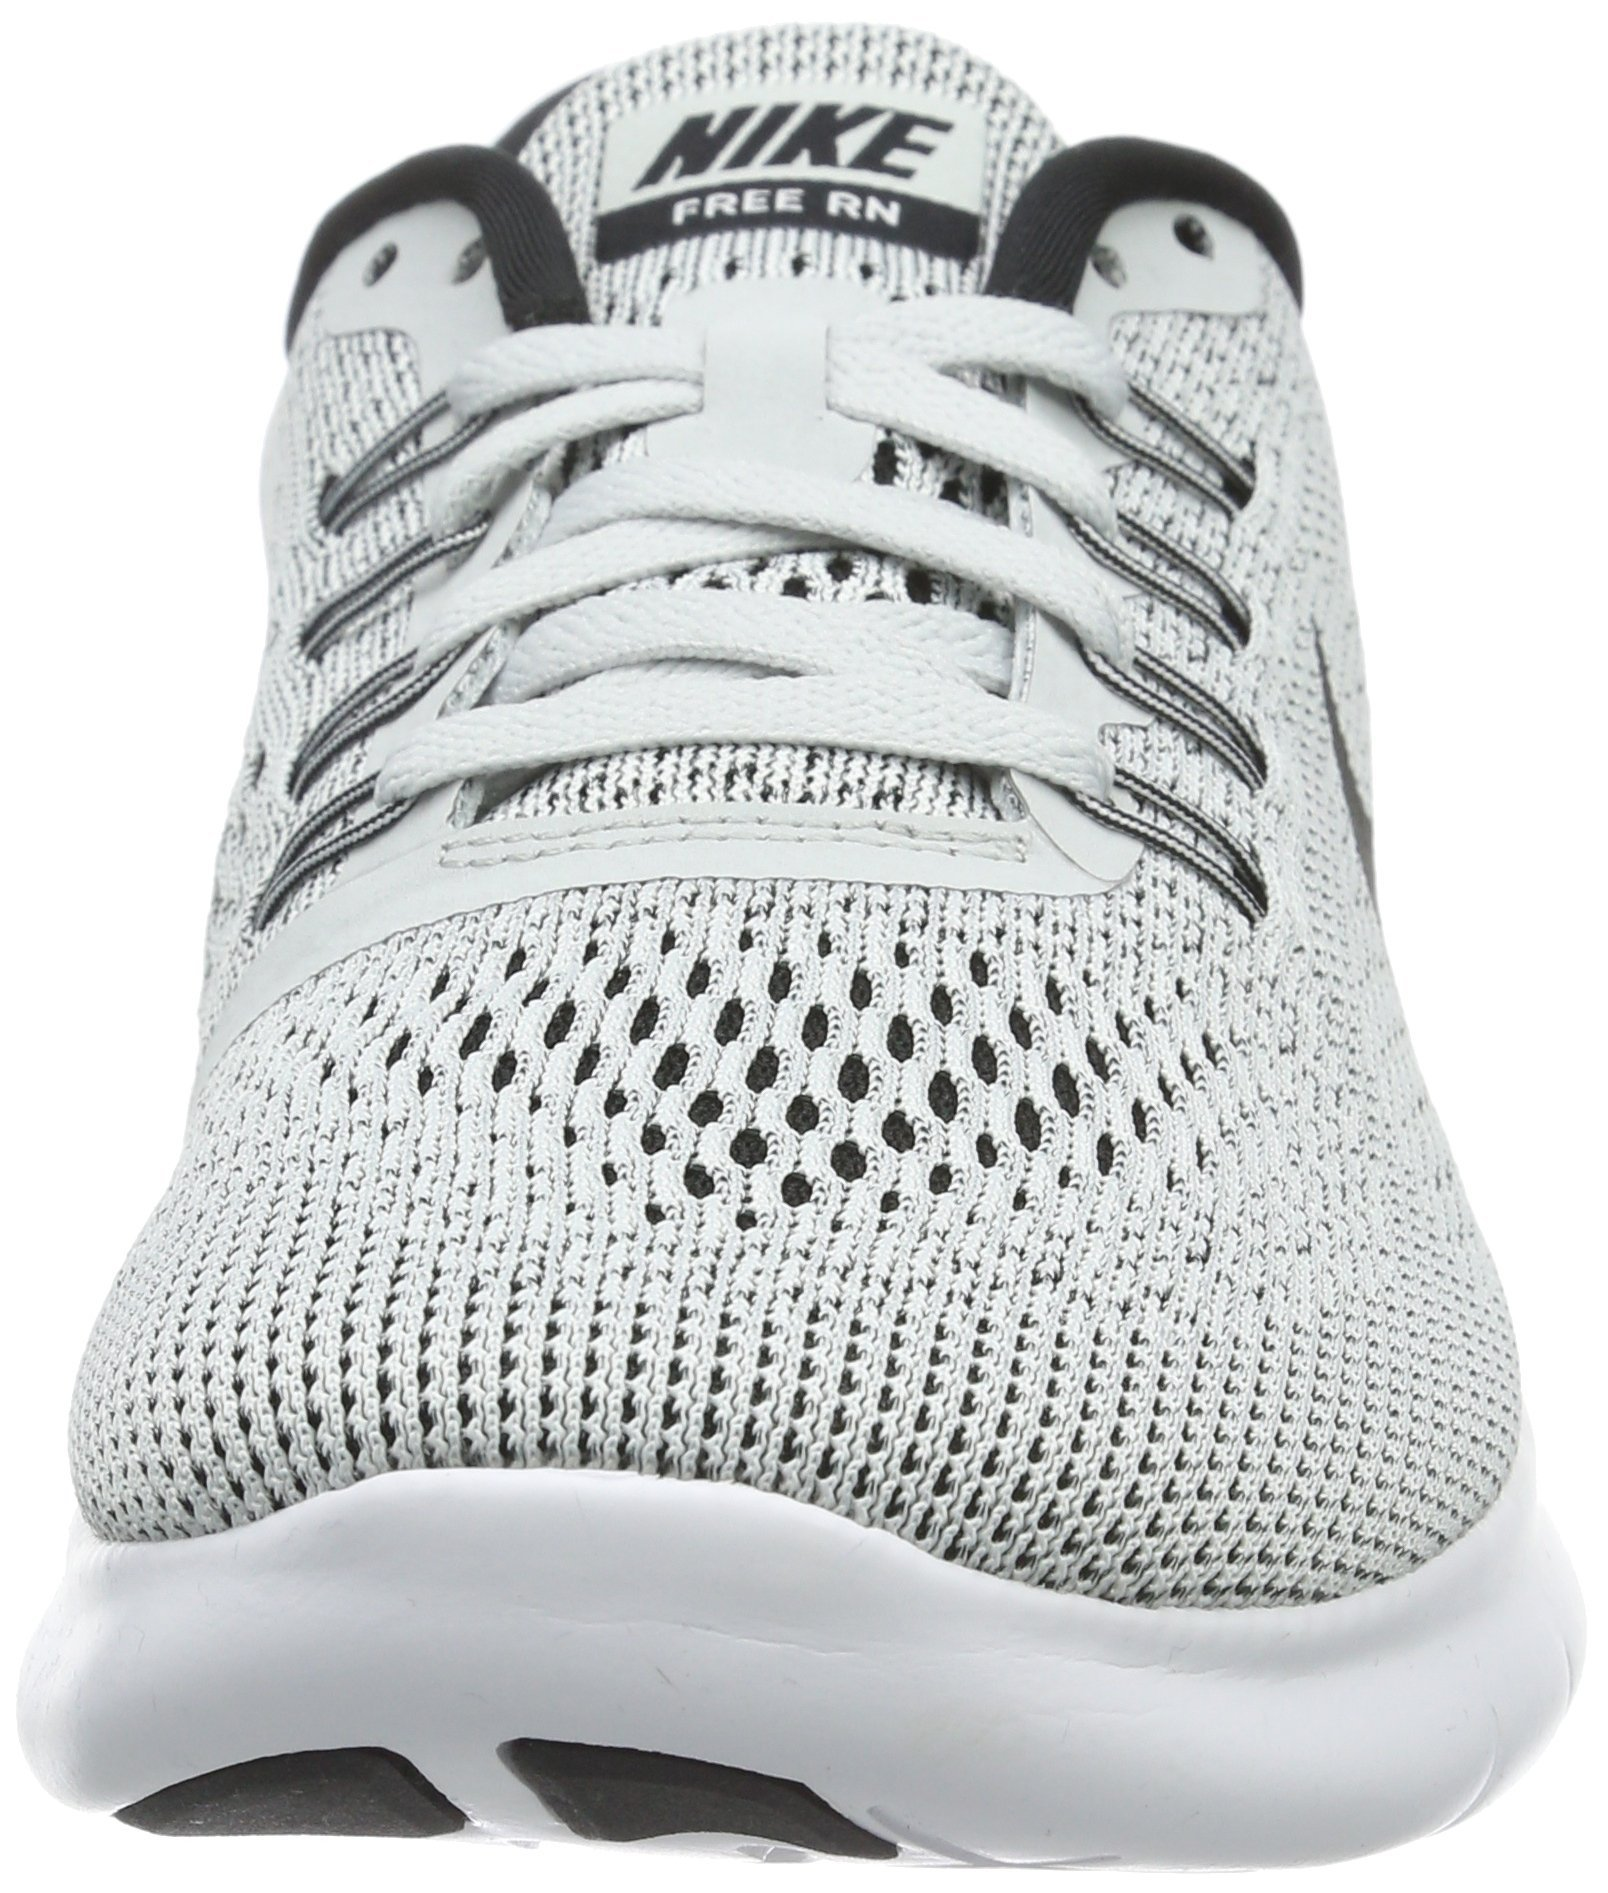 Nike Womens Free RN Running Shoe White/Black/Pure Platinum 6 by Nike (Image #4)